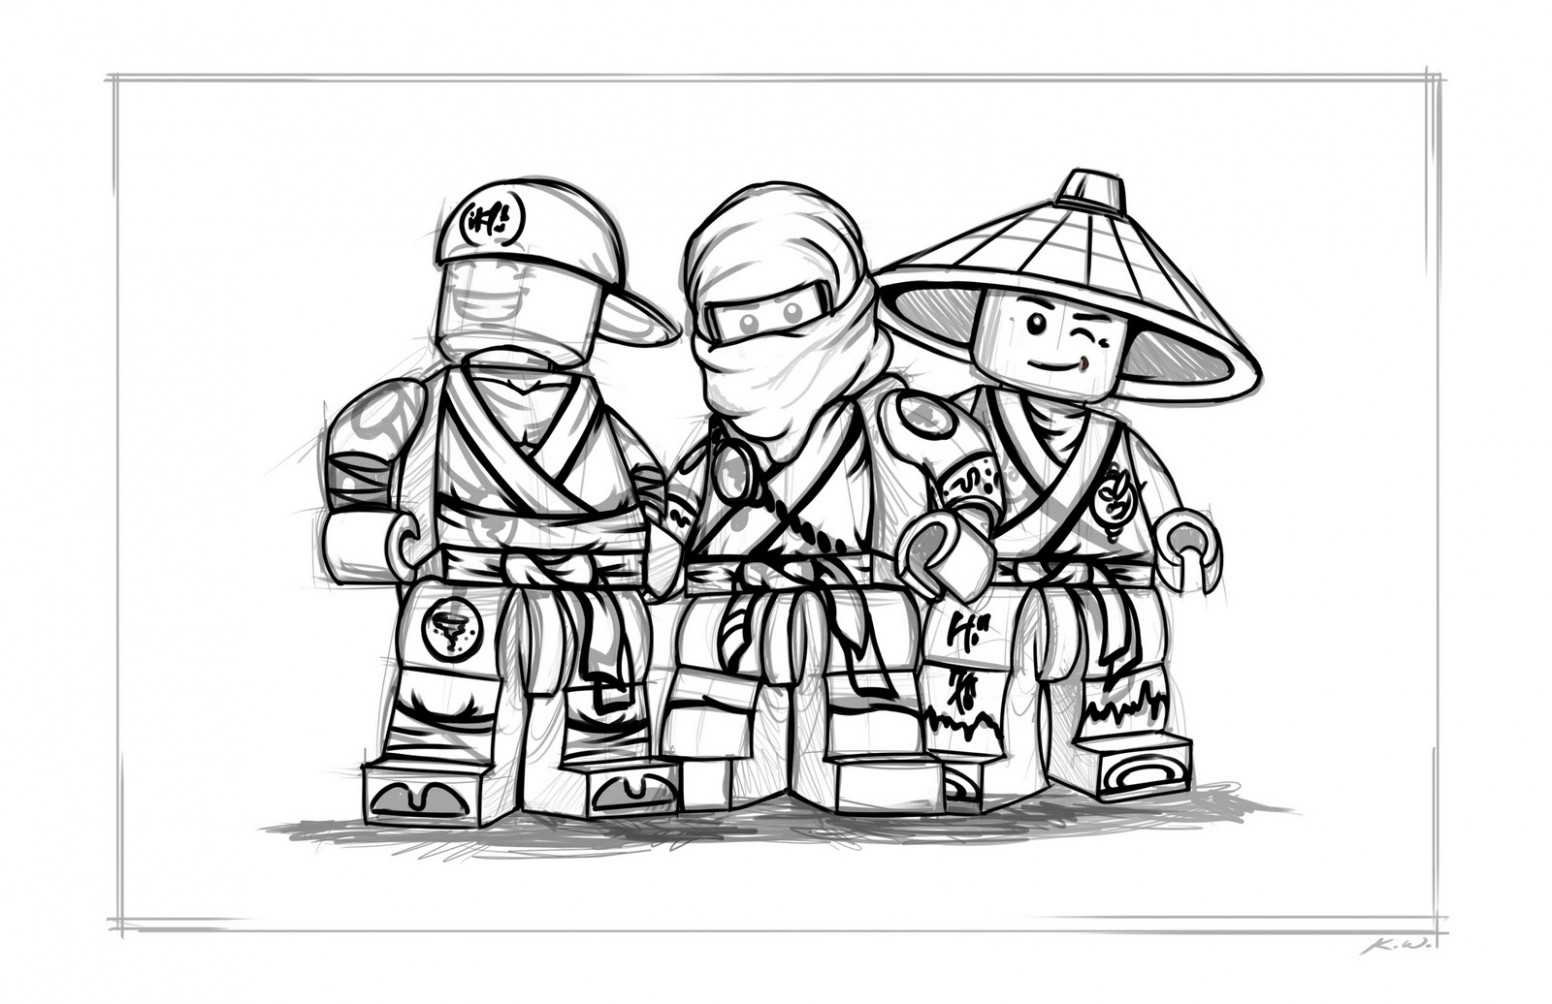 Free Printable Ninjago Coloring Pages For Kids - ninjago coloring book